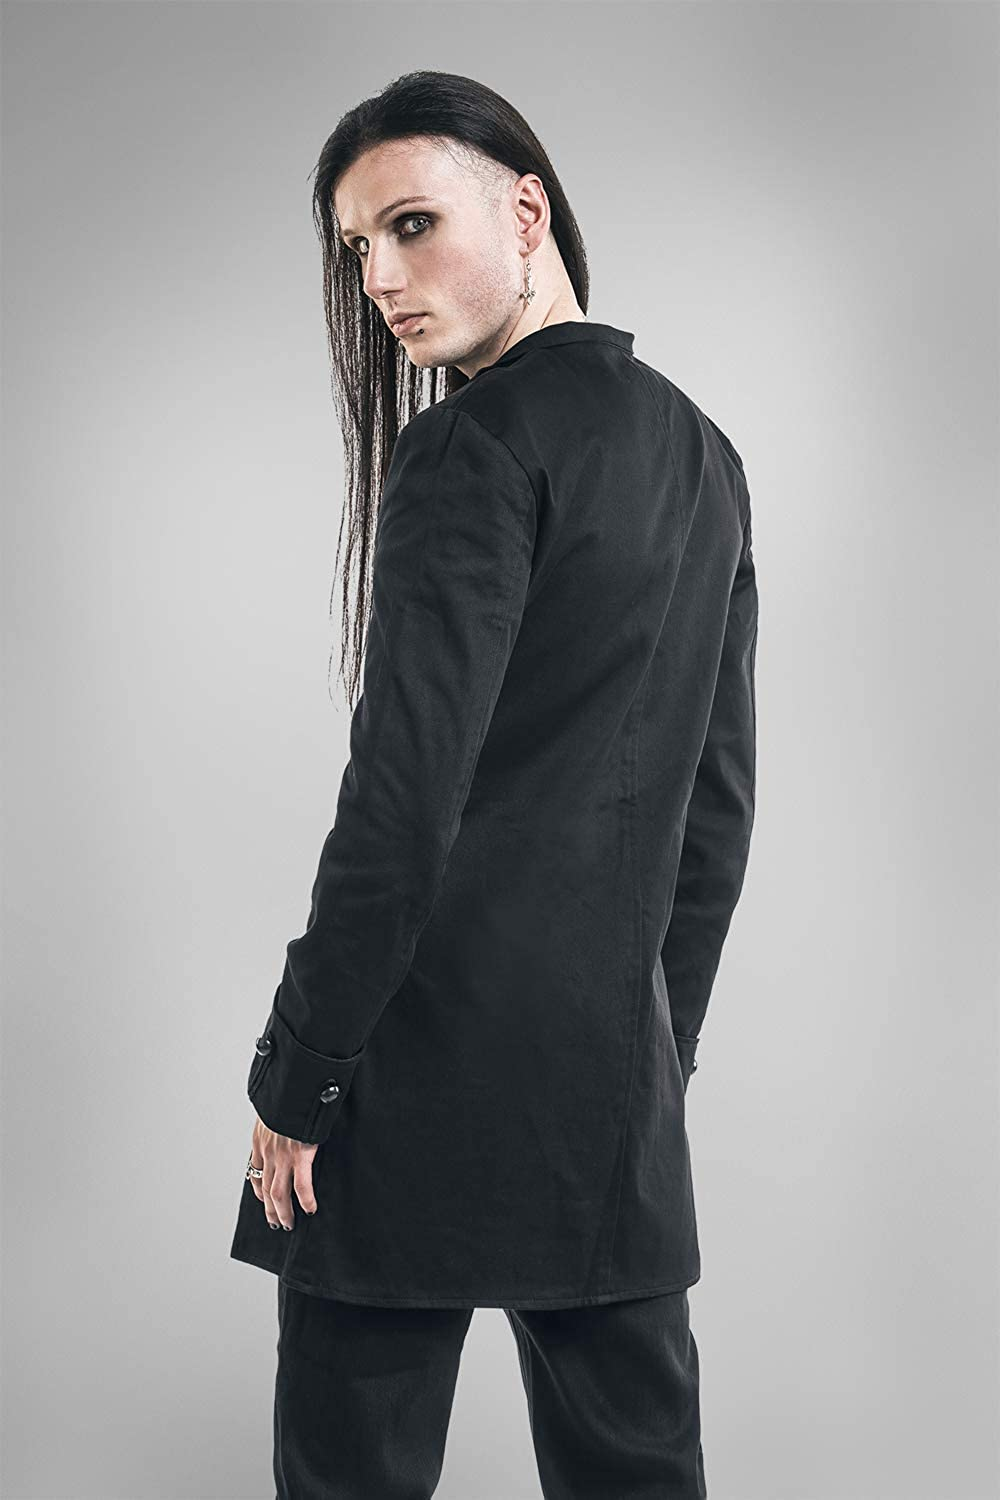 Gothicana by EMP The Vampire of Time and Memory Chaqueta de Uniforme Negro 3XL: Amazon.es: Ropa y accesorios